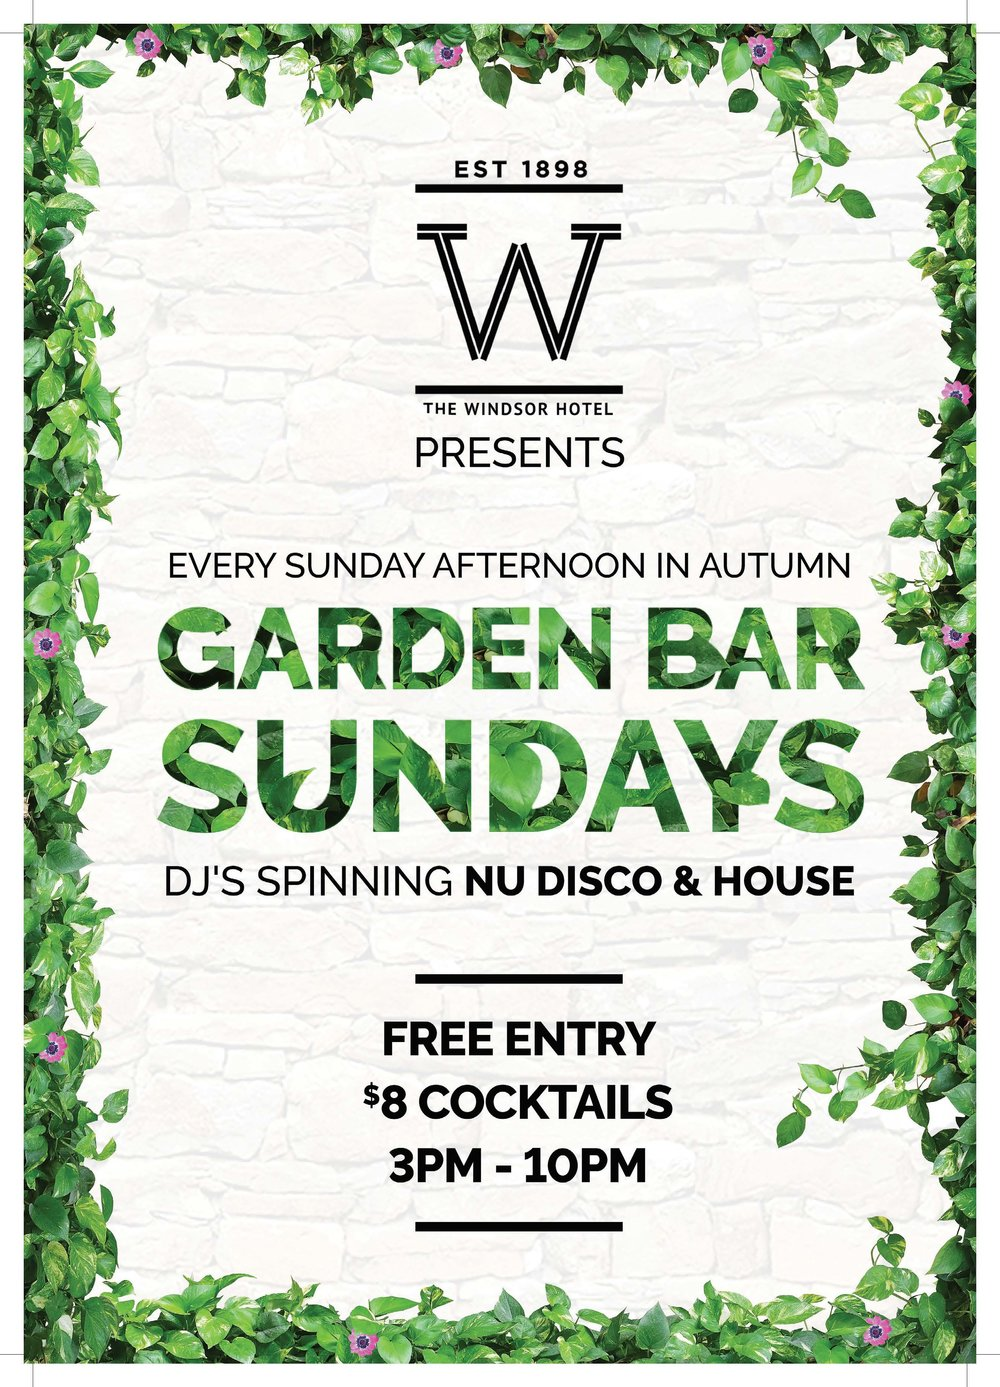 Garden Bar Sundays!   The best Sunday Session south of the river is here, in the Garden Bar every weekend in Autumn. Including $8 Cocktails, $15 Grazing Boards and live DJ's spinning house and nu disco all afternoon long!